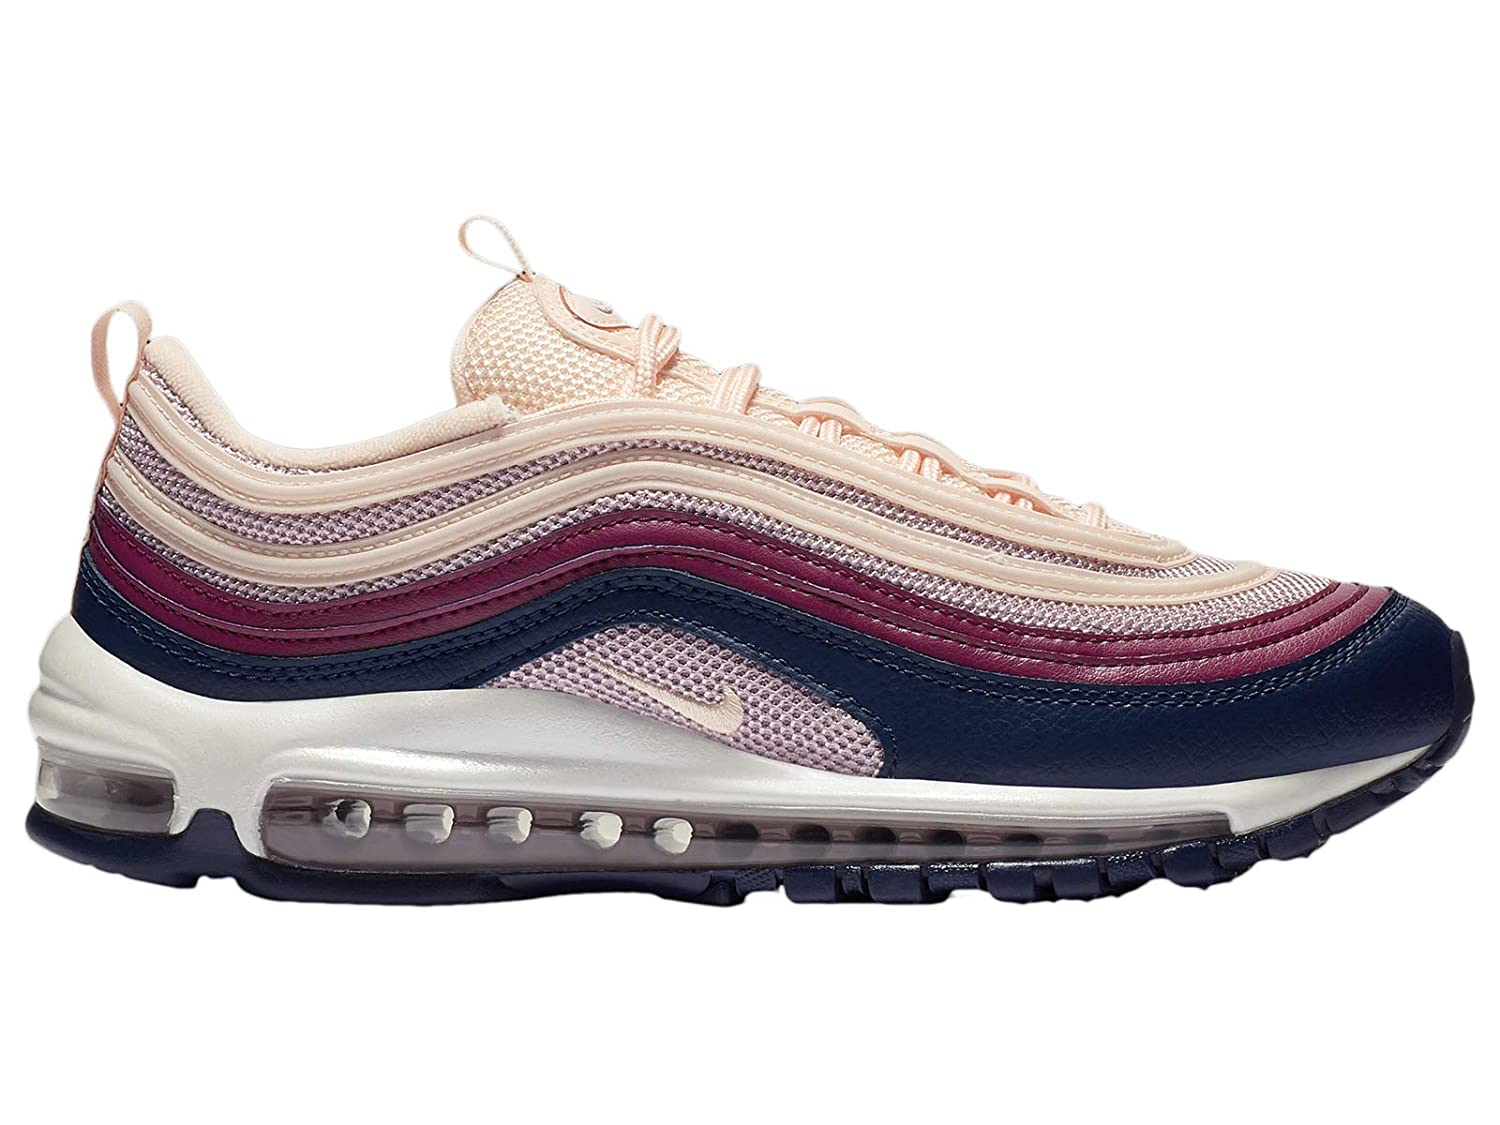 Nike Women's Air Max 97 Crimson TintPlum ChalkBlueWhite Synthetic Running Shoes 9 M US